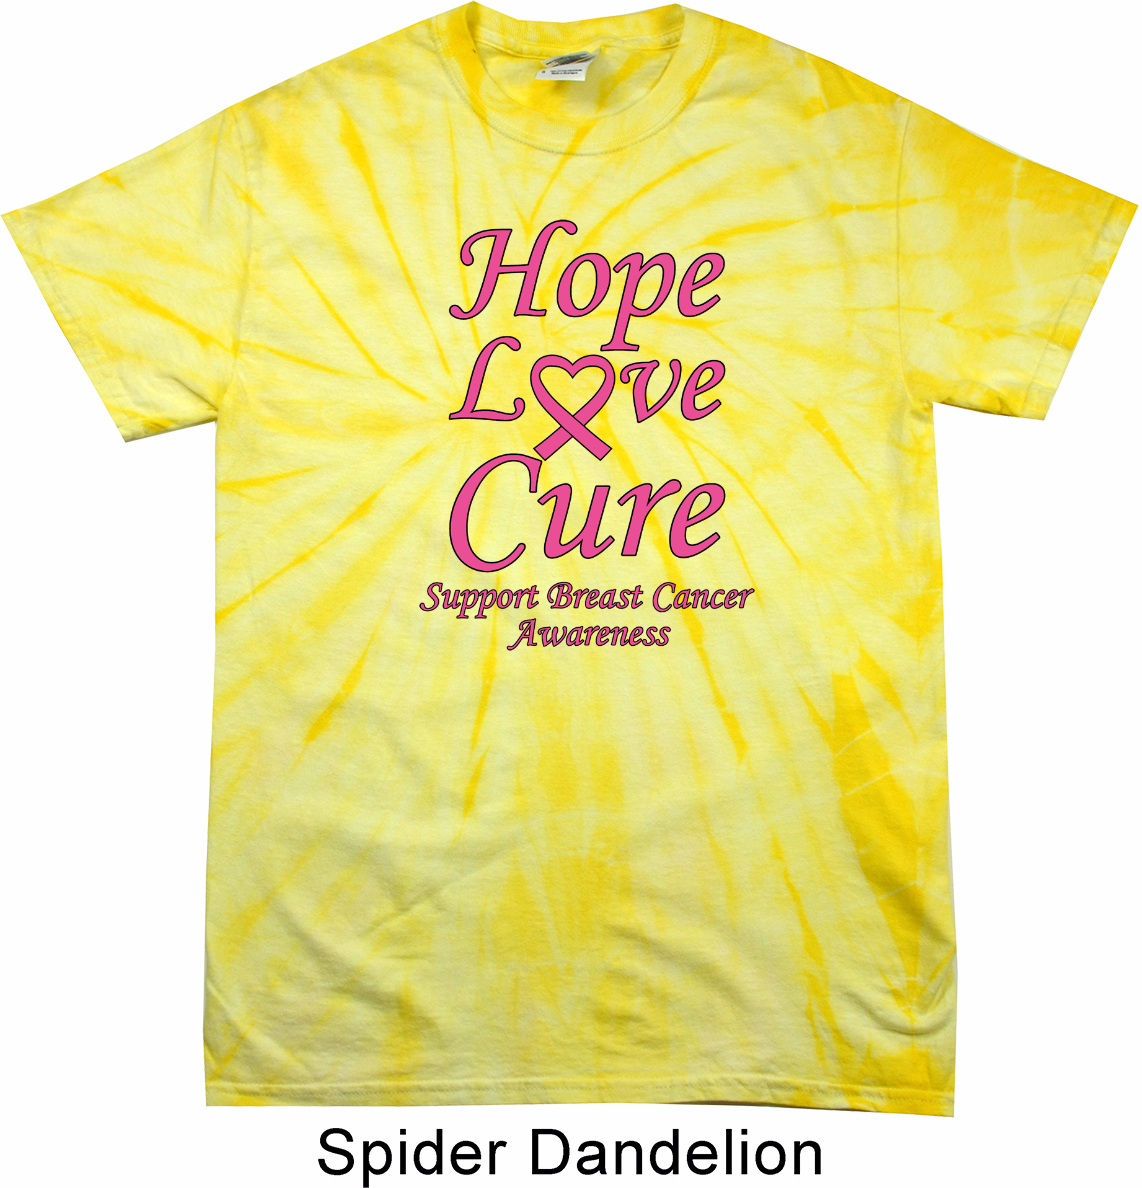 Ladies Hope Love Cure Support Childhood Cancer Awareness Tri Blend Hoodie Tee T-Shirt CH-HLC-W3101